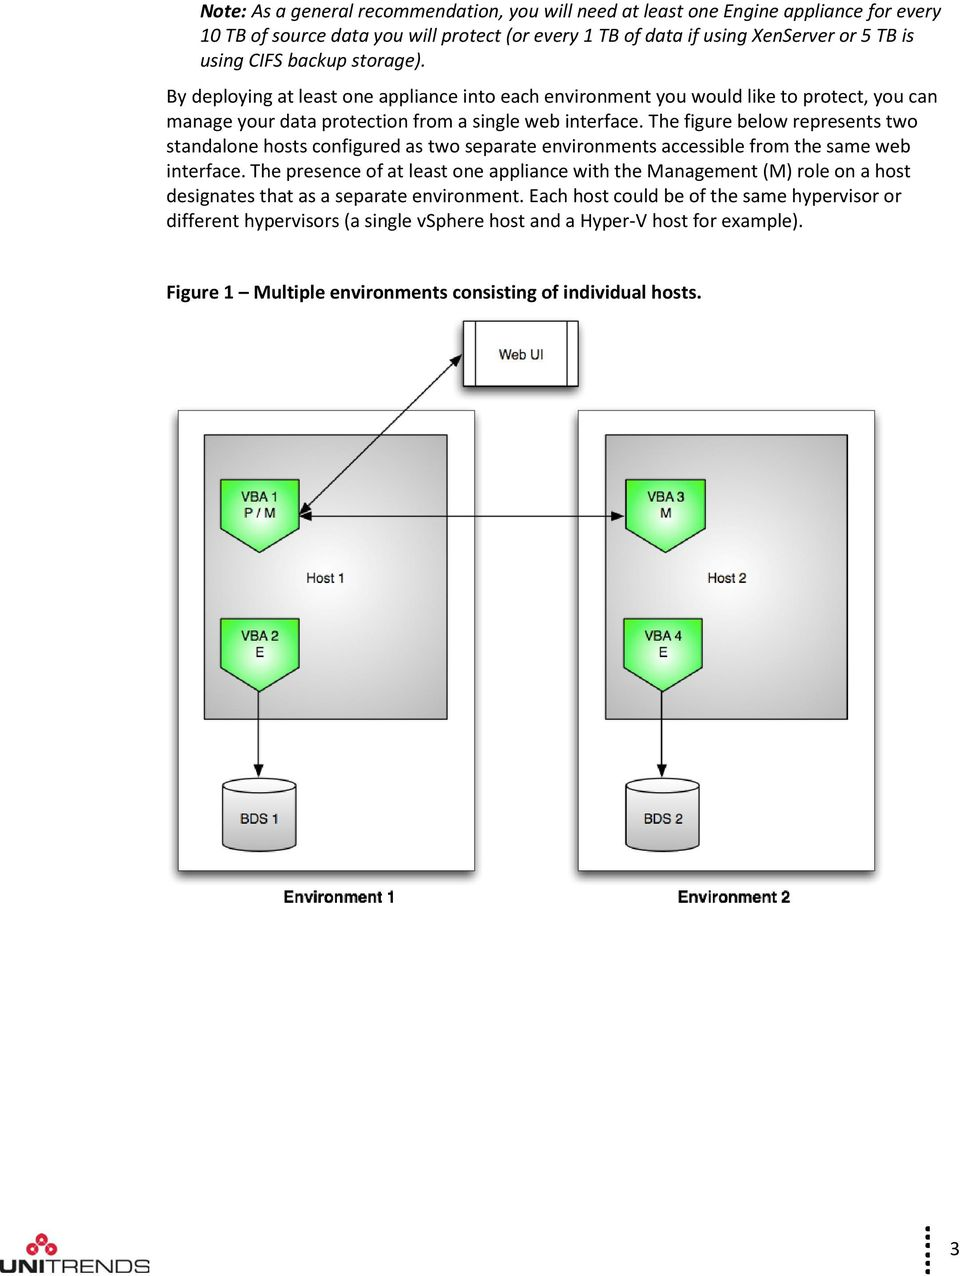 The figure below represents two standalone hosts configured as two separate environments accessible from the same web interface.